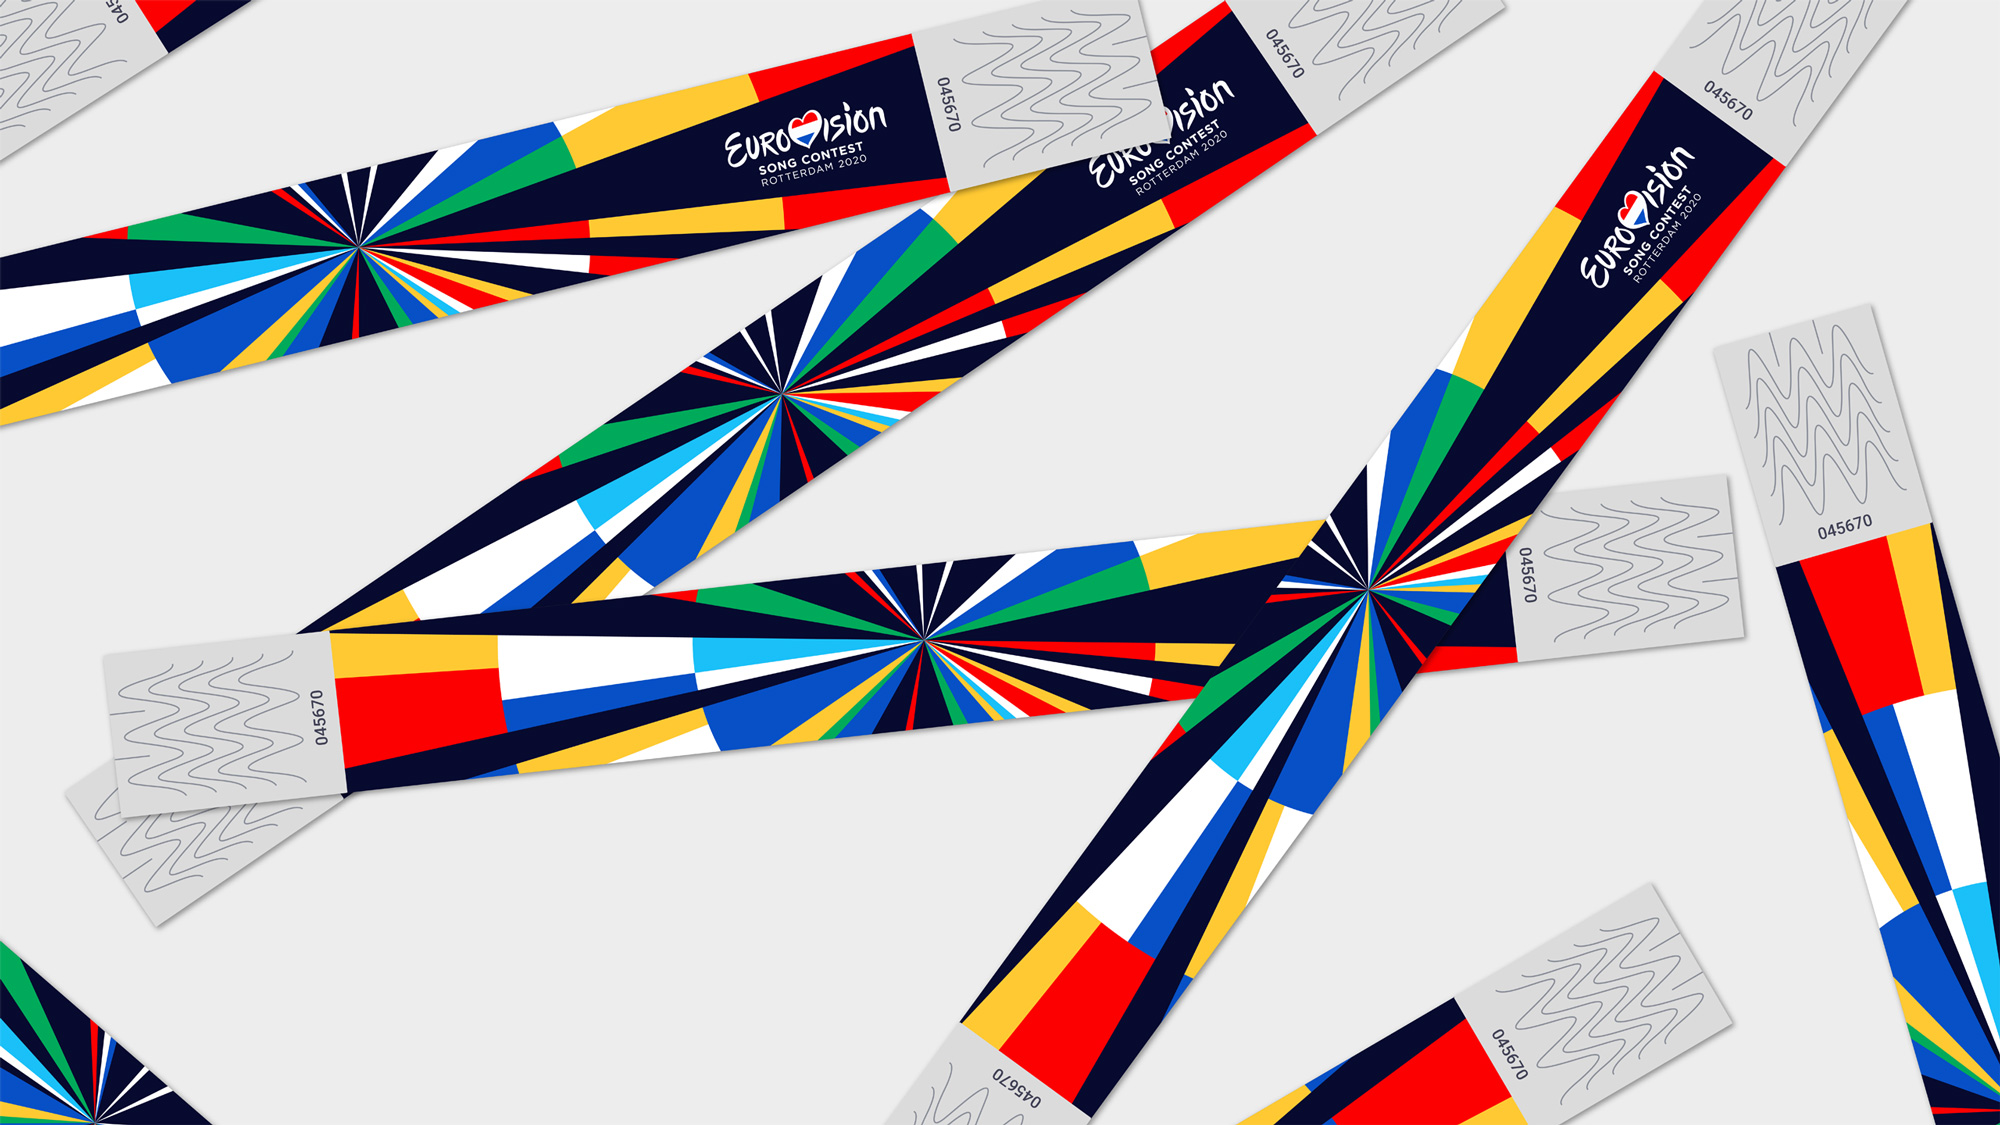 New Logo and Identity for Eurovision Song Contest by CLEVER°FRANKE